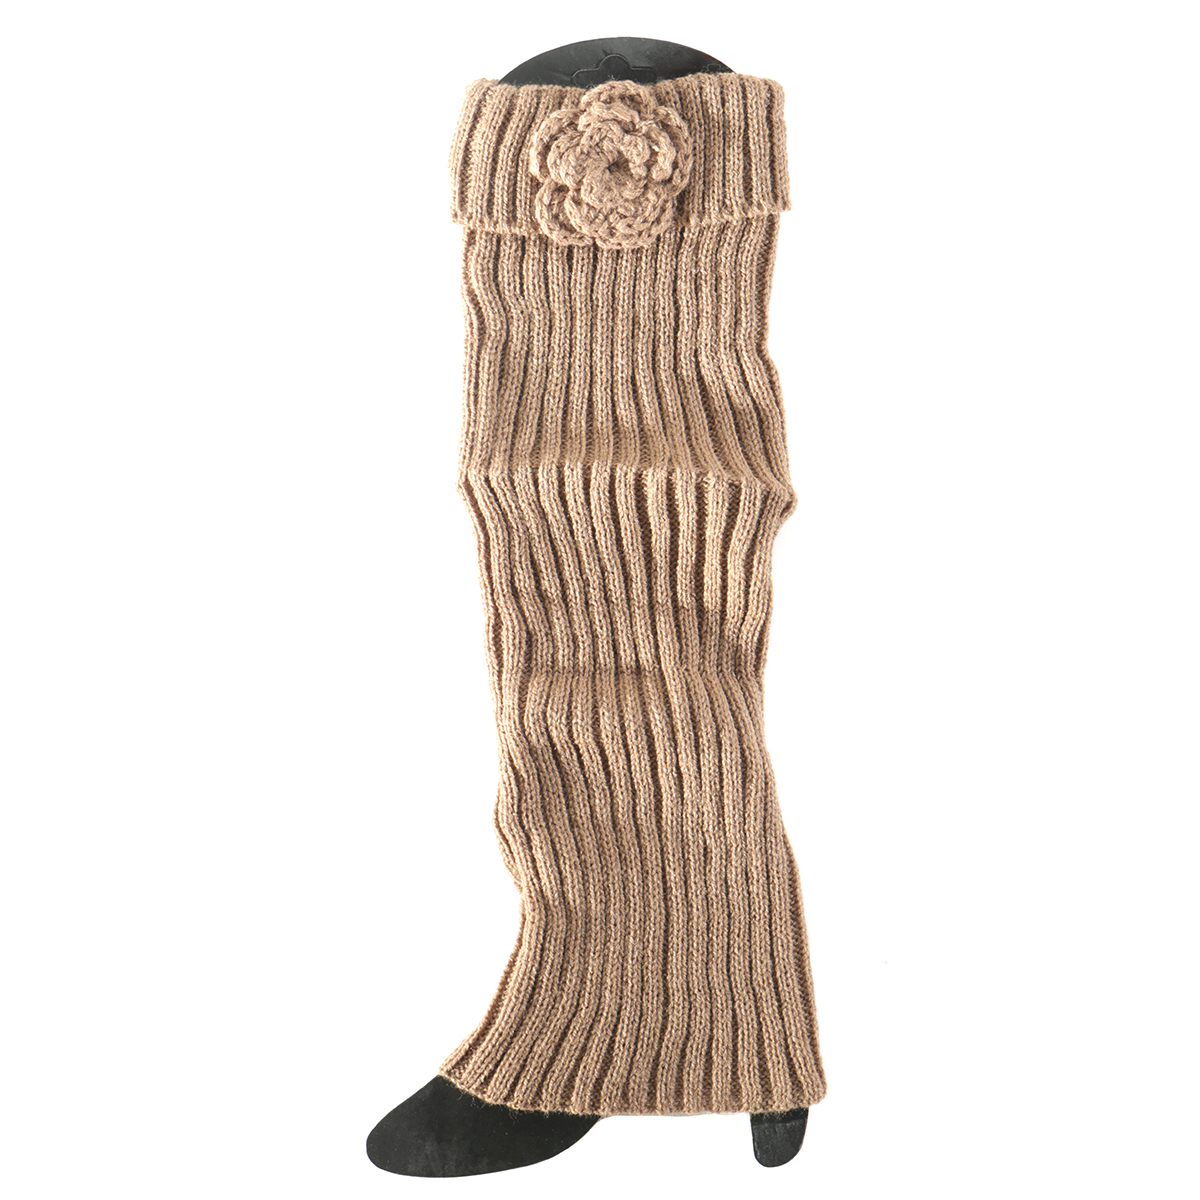 Tan Boot Cuff with Flower Tall 50sp